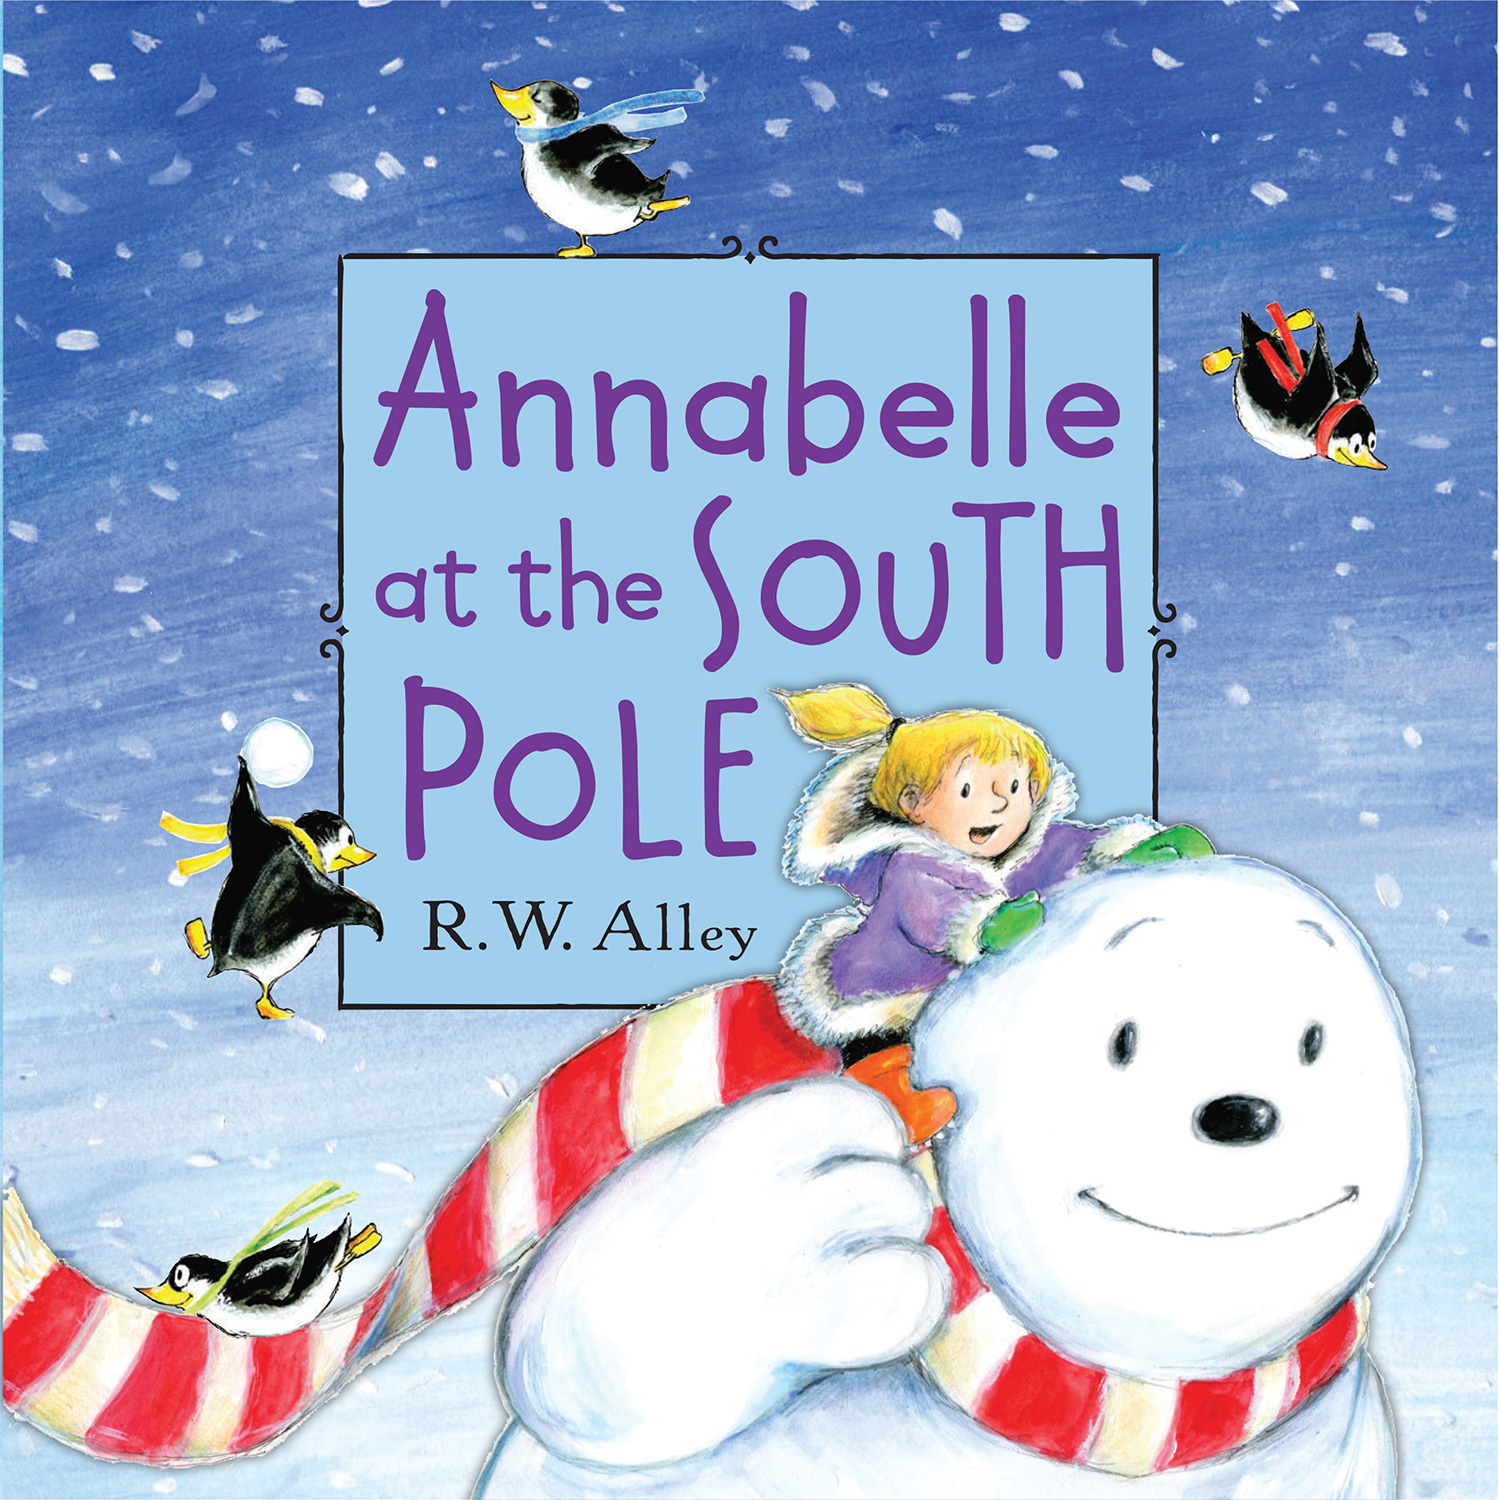 Annabelle at the South Pole  by  R w Alley